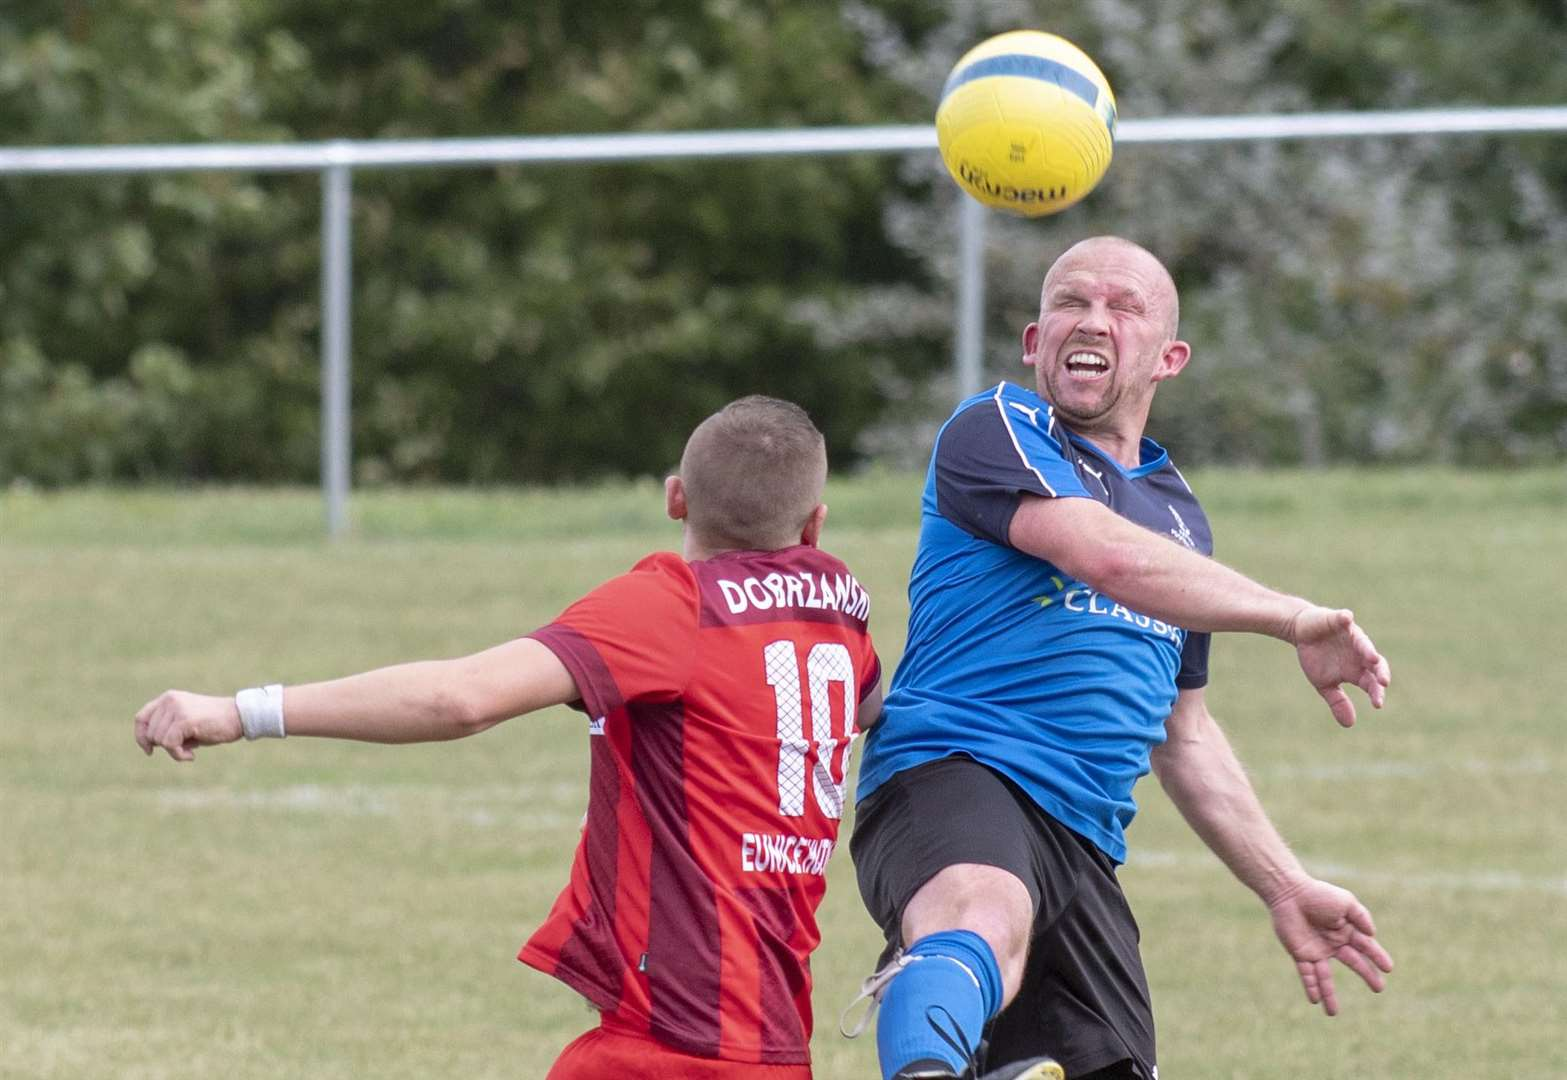 FOOTBALL: Second half showing brings plenty of positives for Ketton